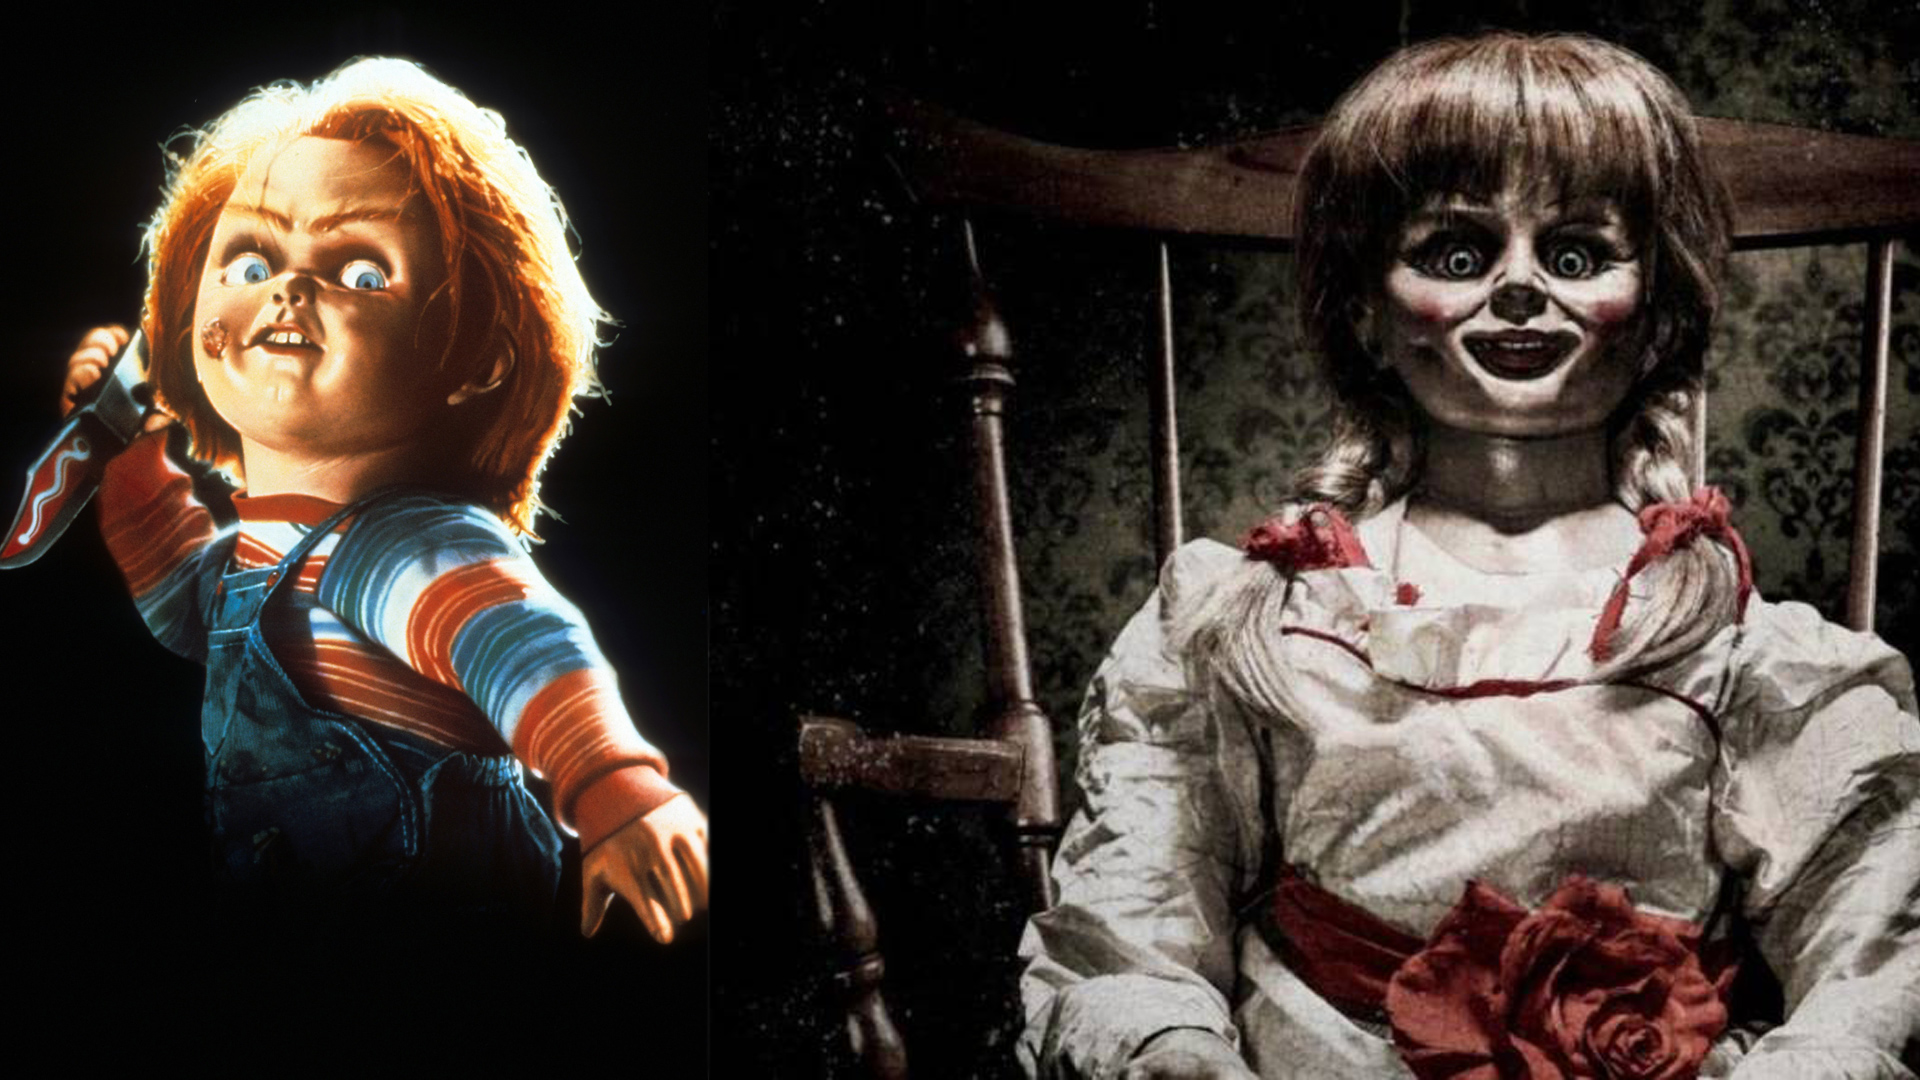 annabelle vs chucky which creepy doll should you fear the most